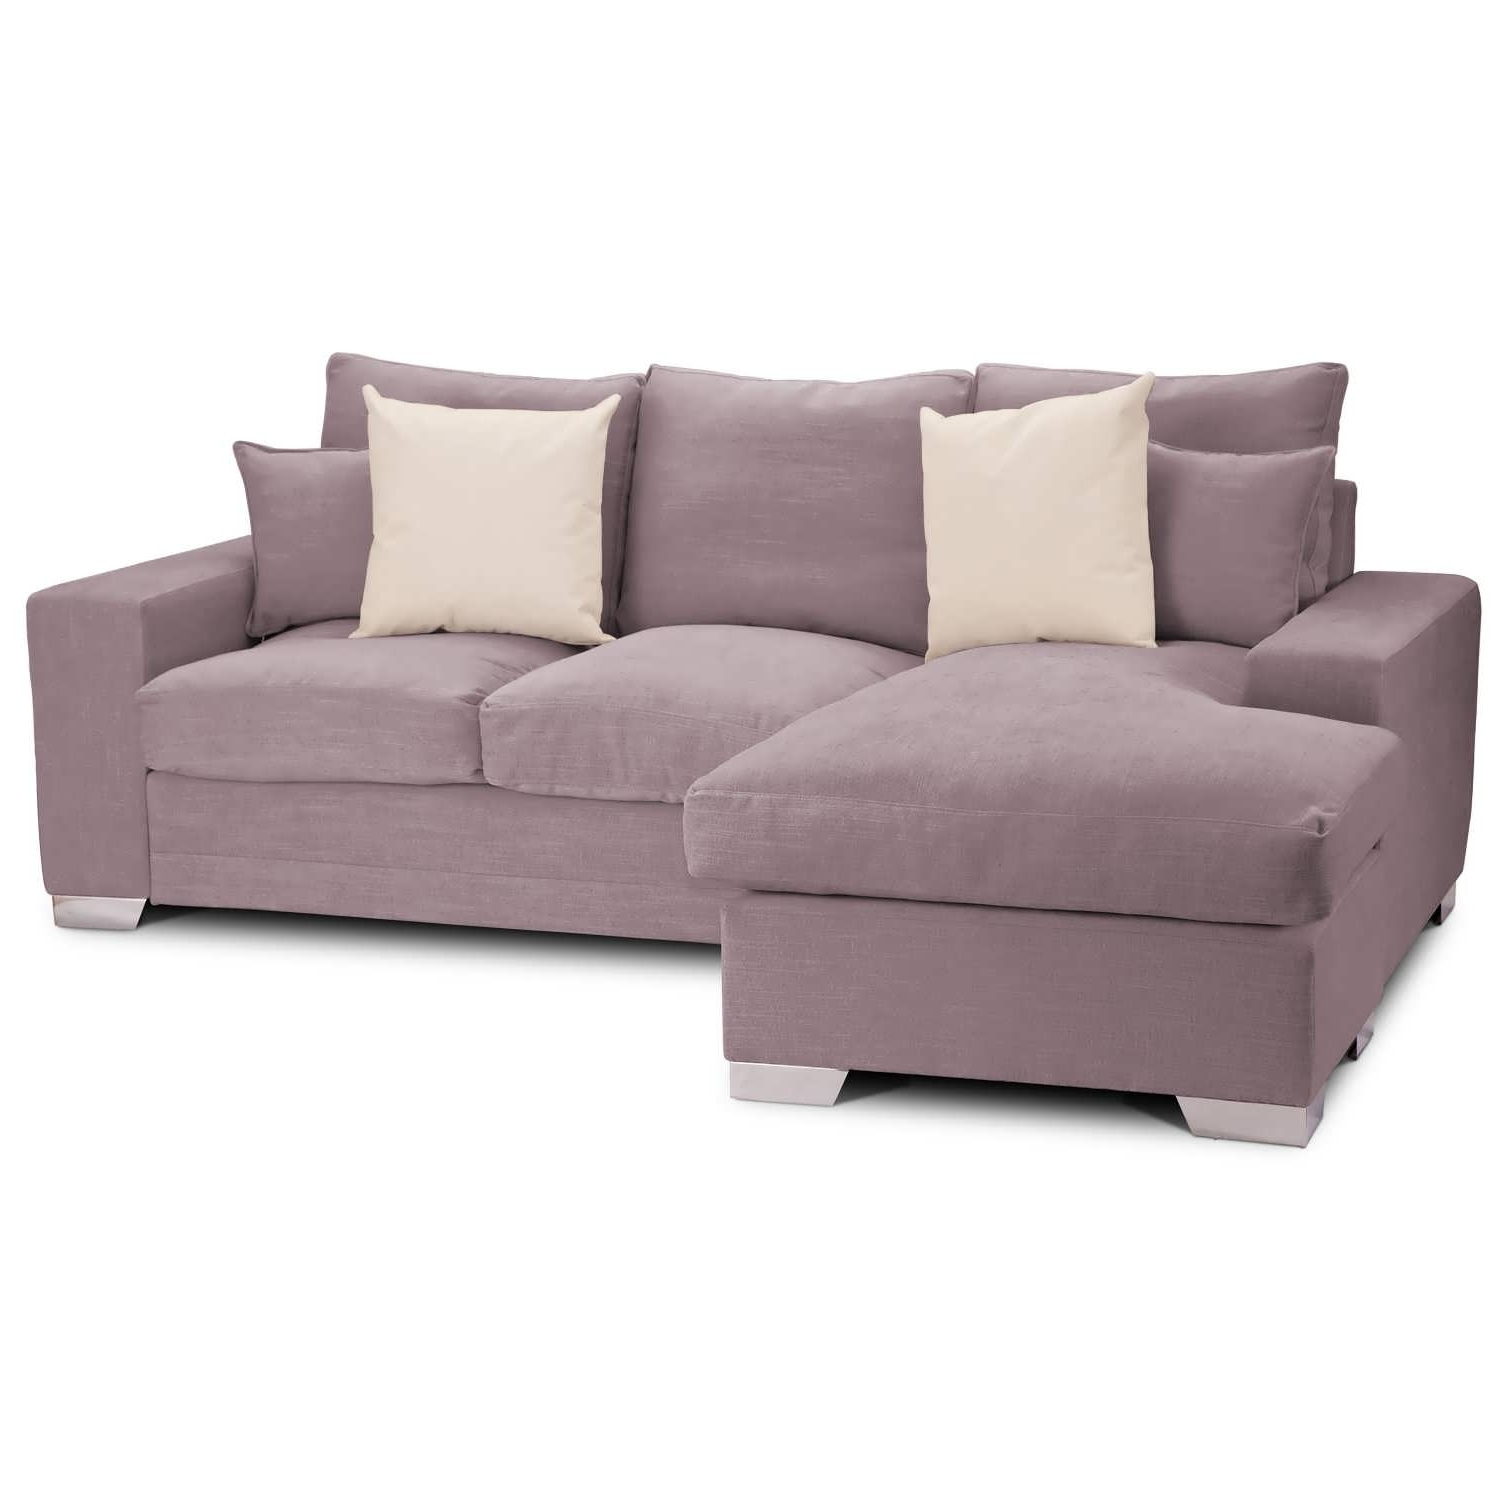 home for sofas loveseat image cheap chaise hotelsbacau the of sofa sectional style redesign with small in